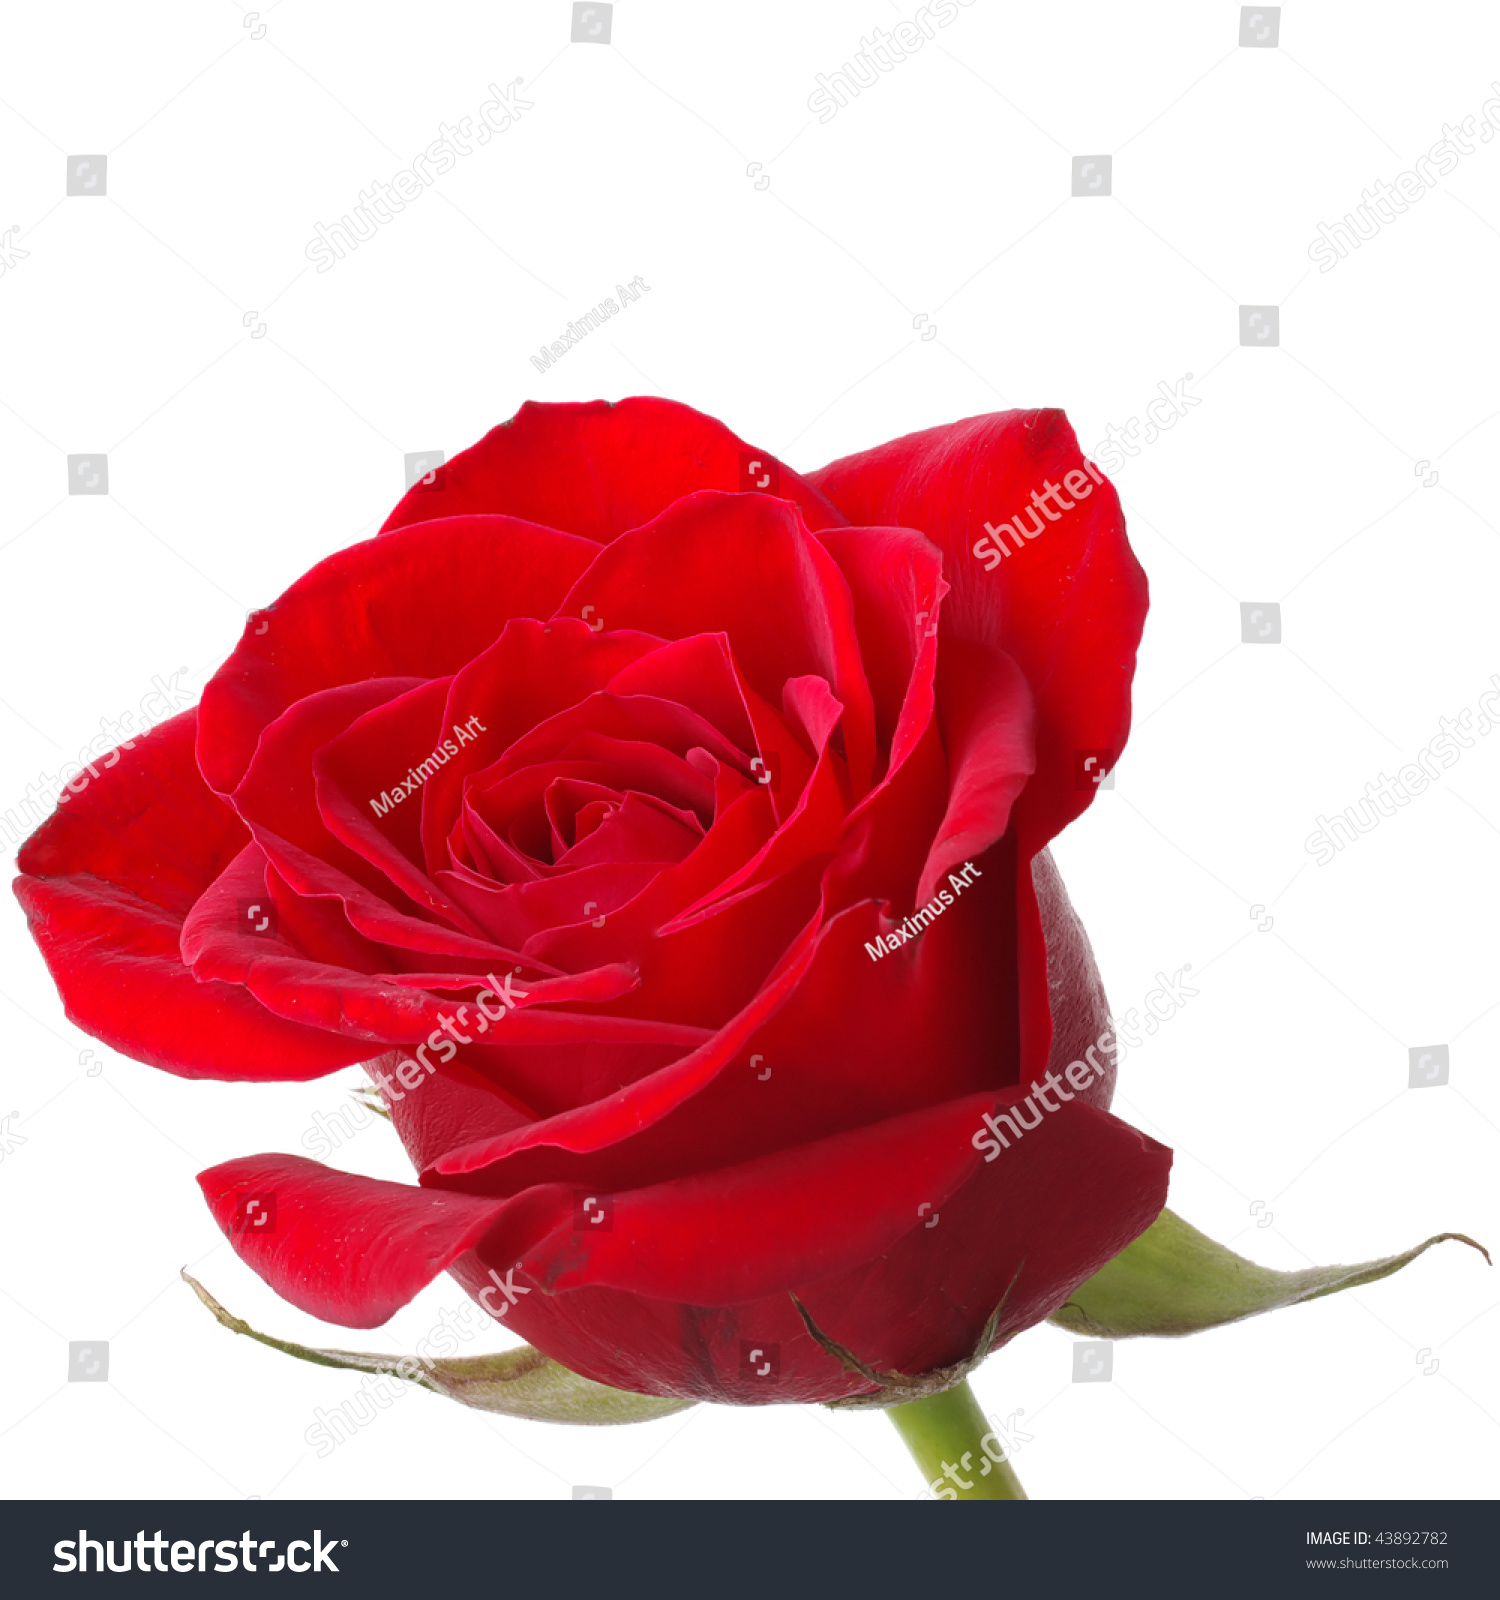 Vibrant Red Rose Isolated On White Stock Photo 43892782 - Shutterstock